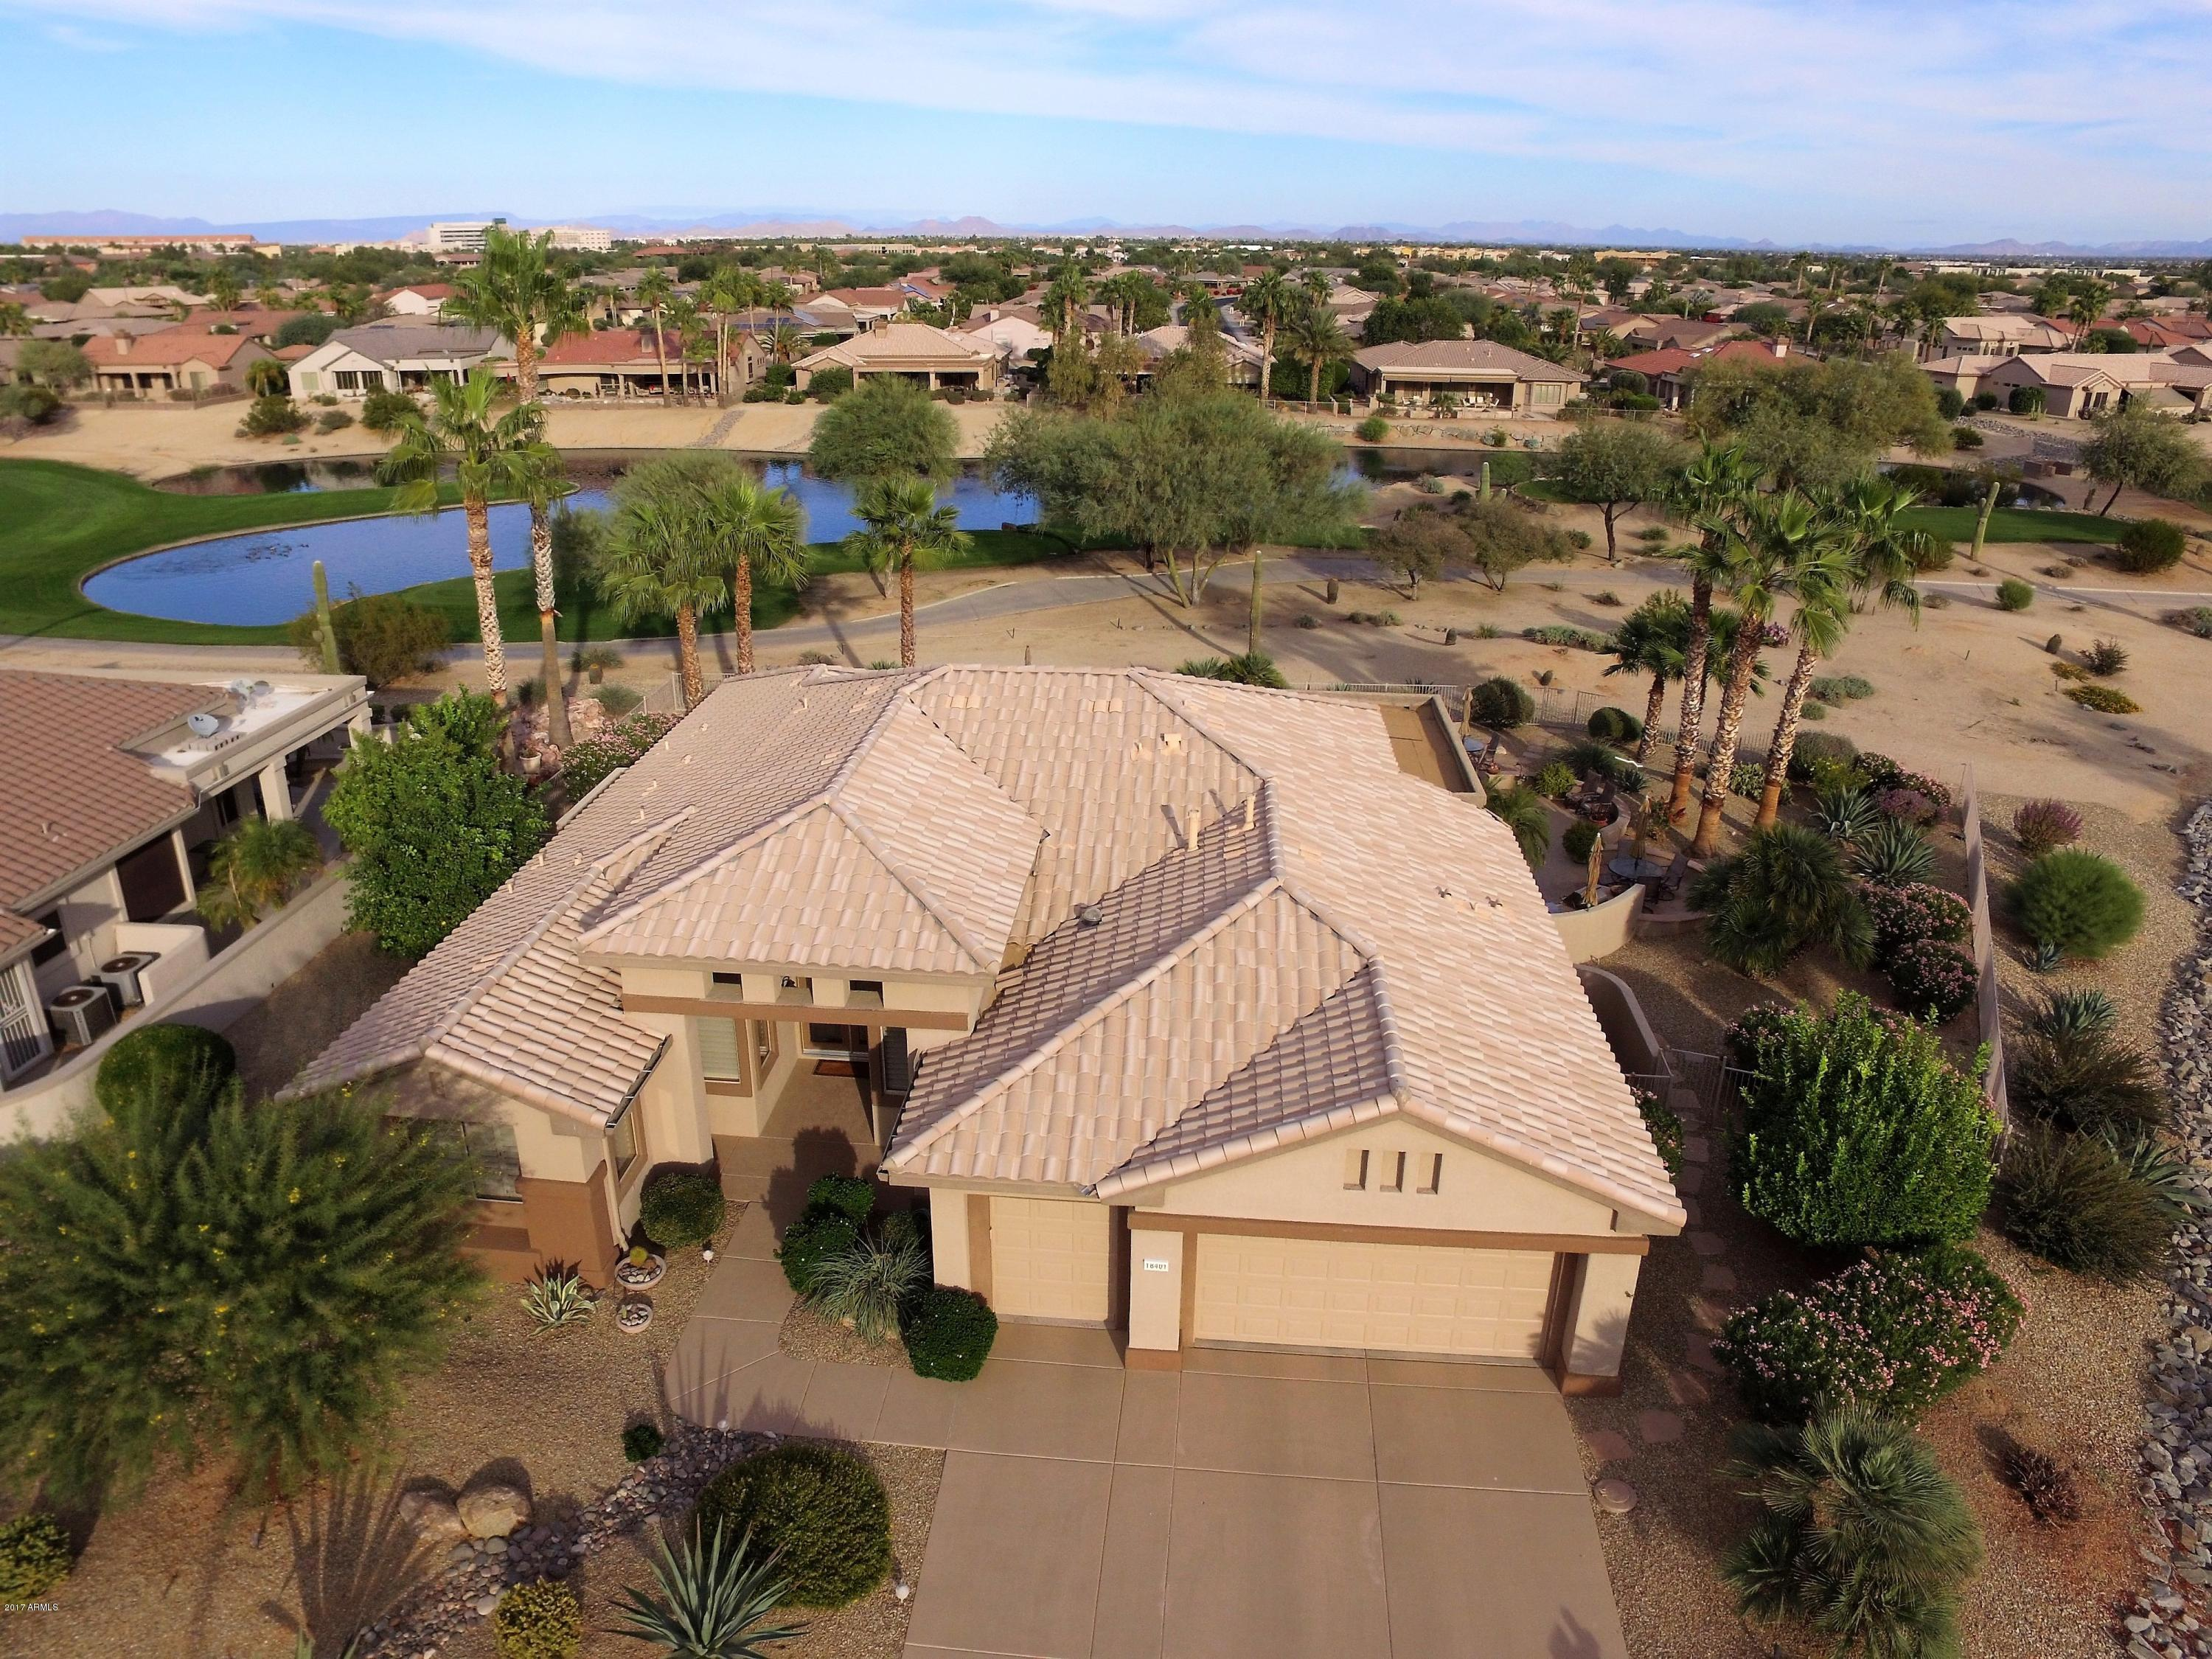 18401 N HIBISCUS LANE, SURPRISE, AZ 85374